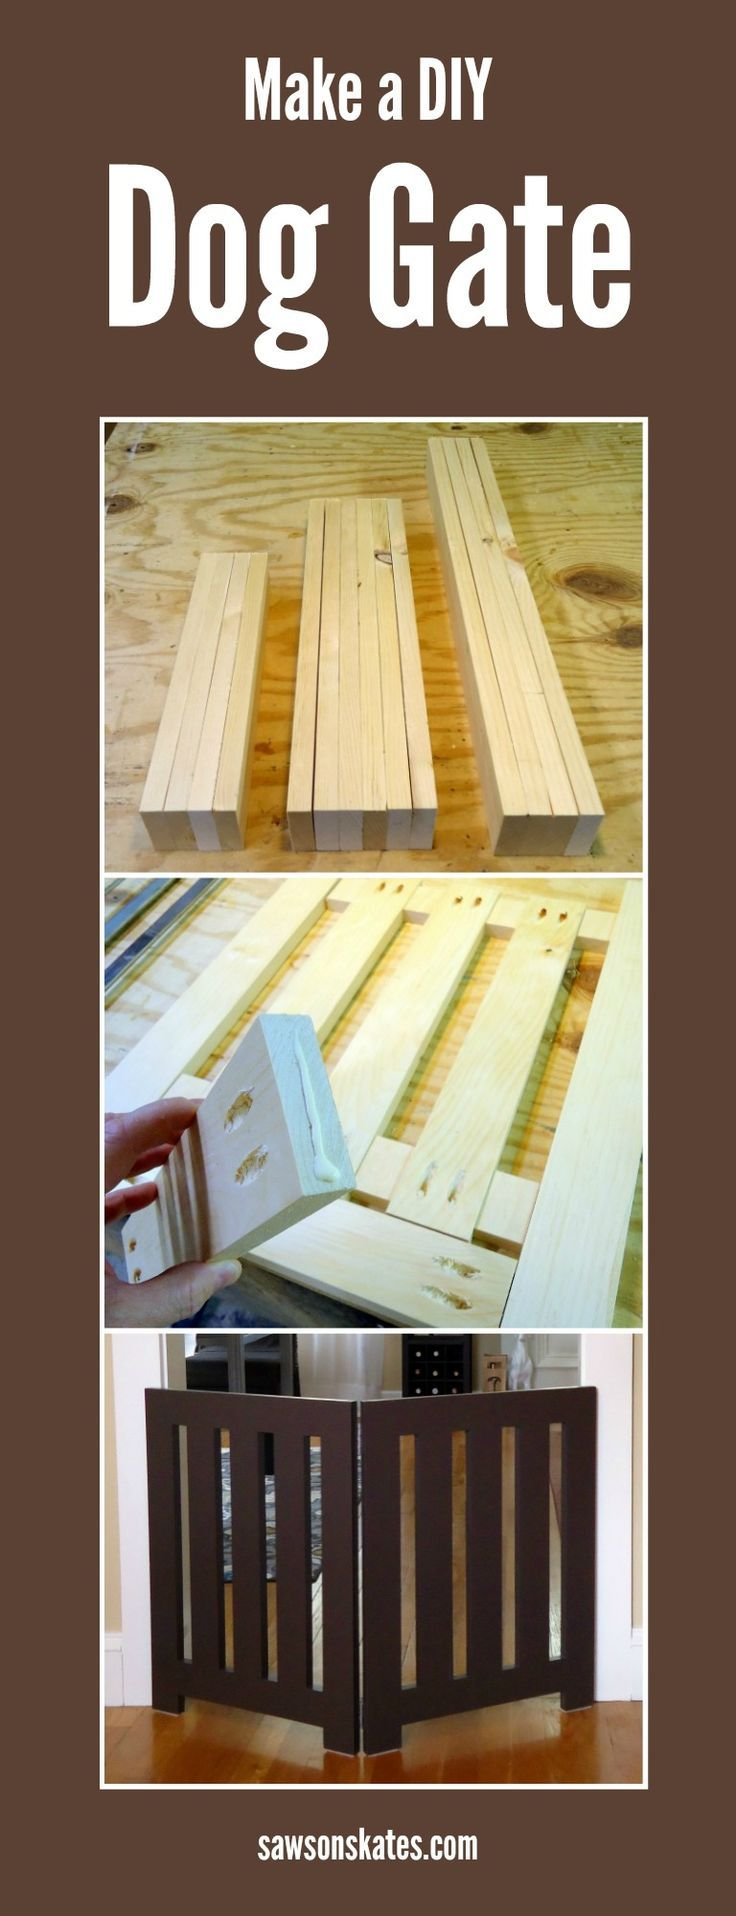 Looking for homemade pet gate ideas that look store bought and that your doggies will love? Check out this indoor DIY plan for a folding free standing dog gate. It's easy to build,  decorative enough to leave out and neatly folds when not in use. FREE PLANS!